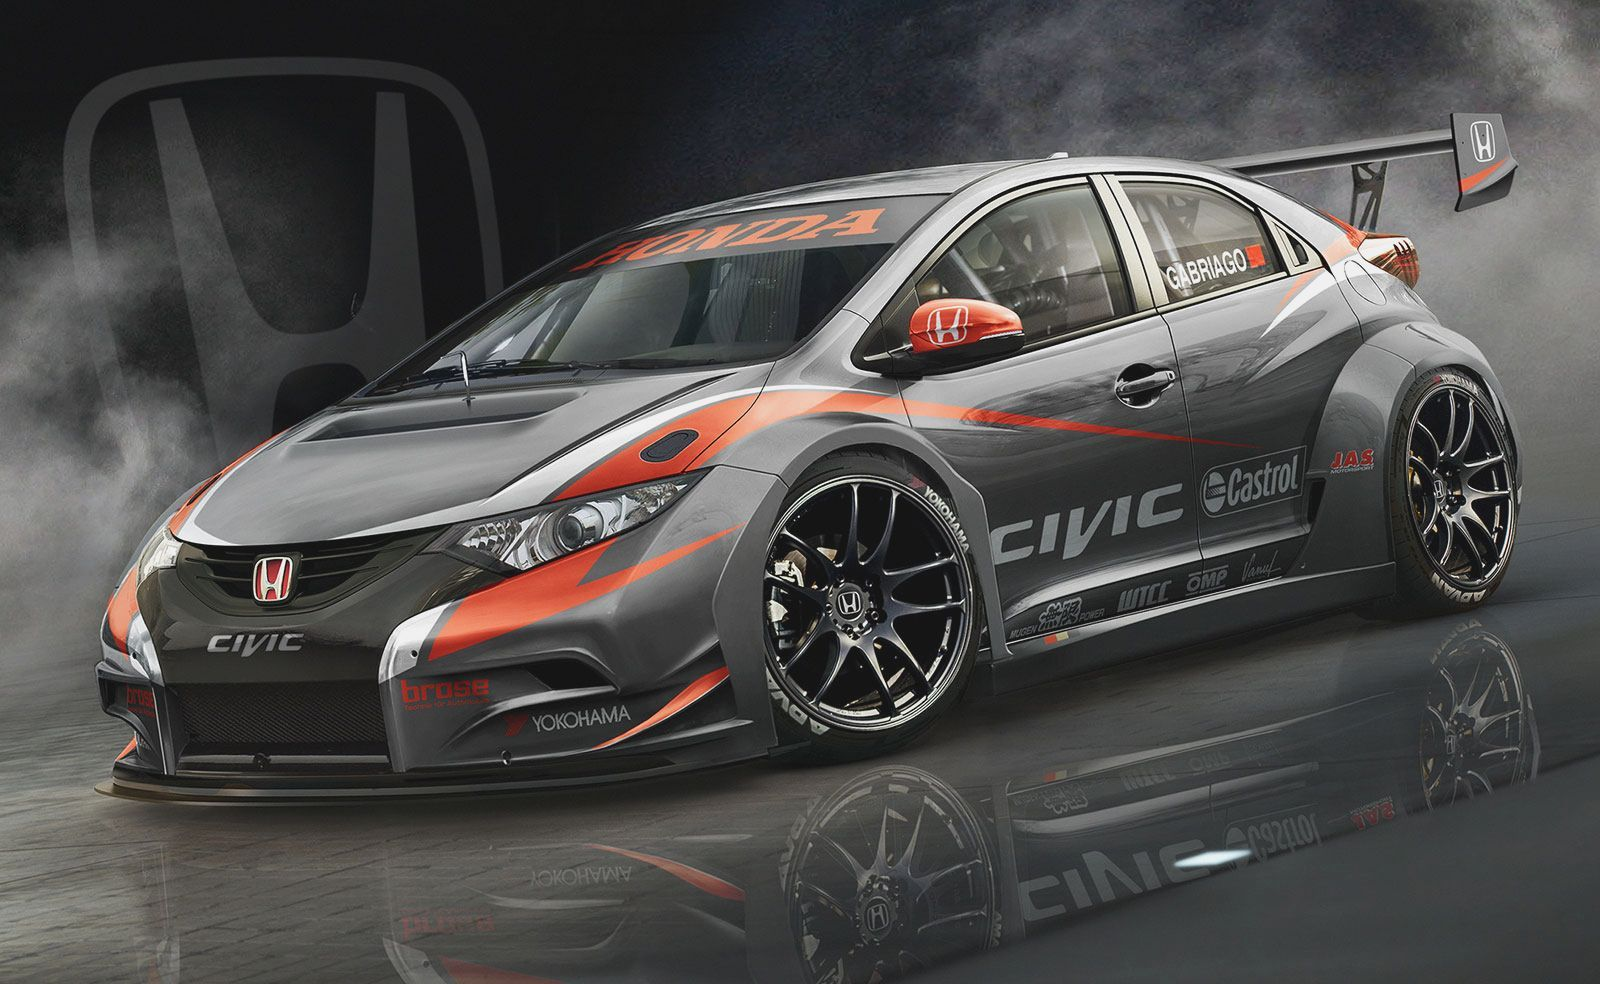 Honda Civic Type R Sport Cars Wallpapers Coches chulos